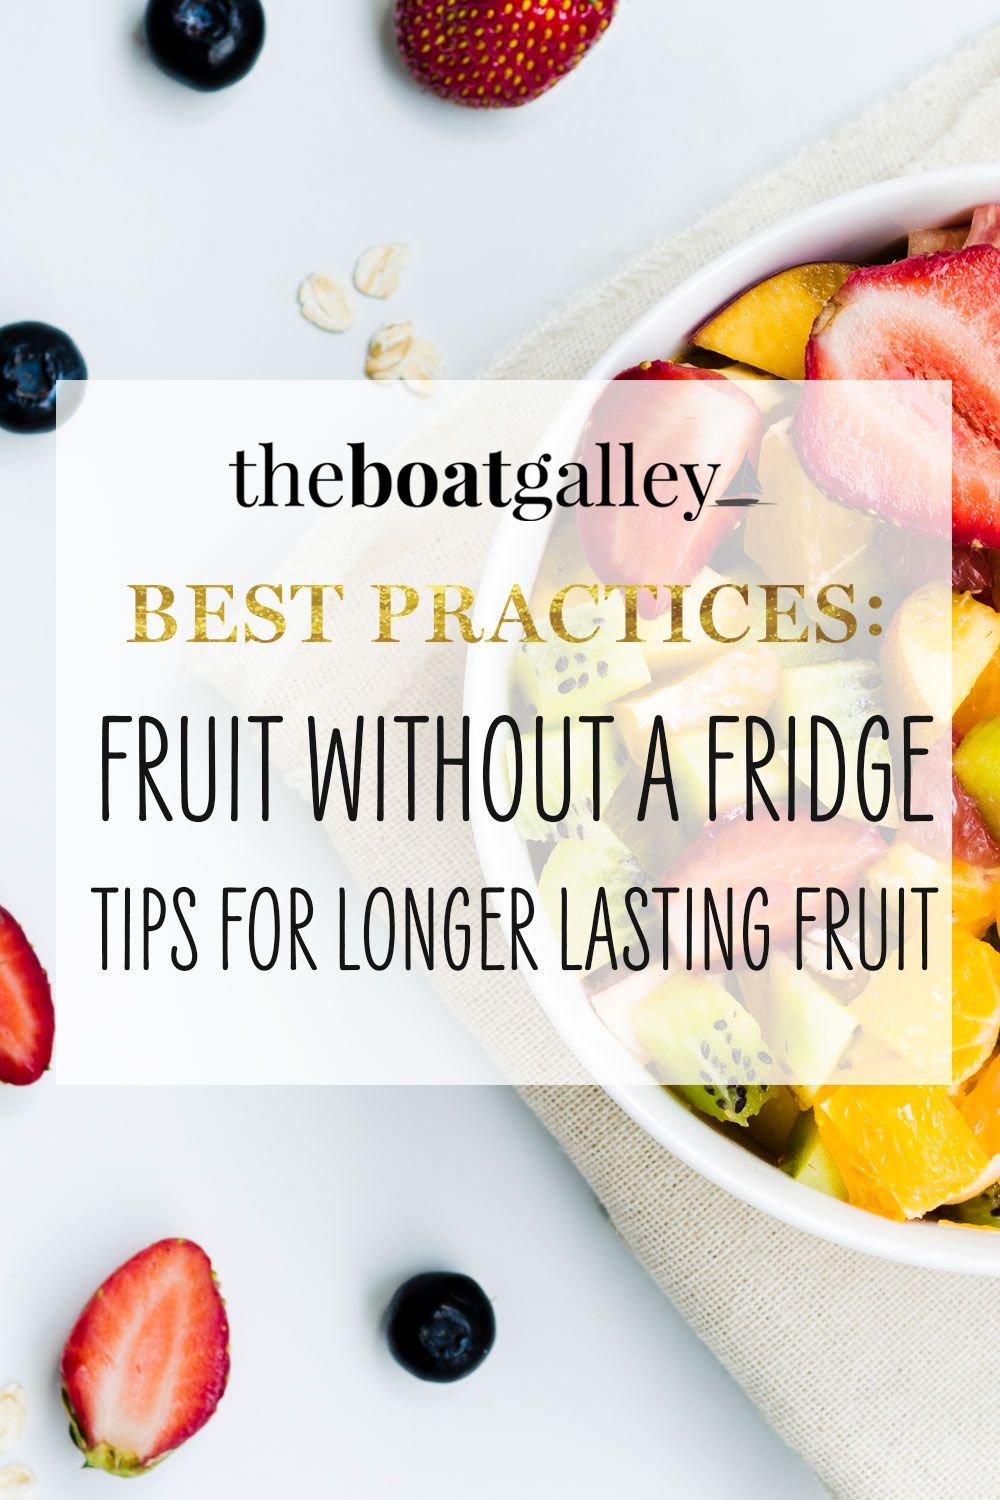 Storing Fruit without Refrigeration The Boat Galley